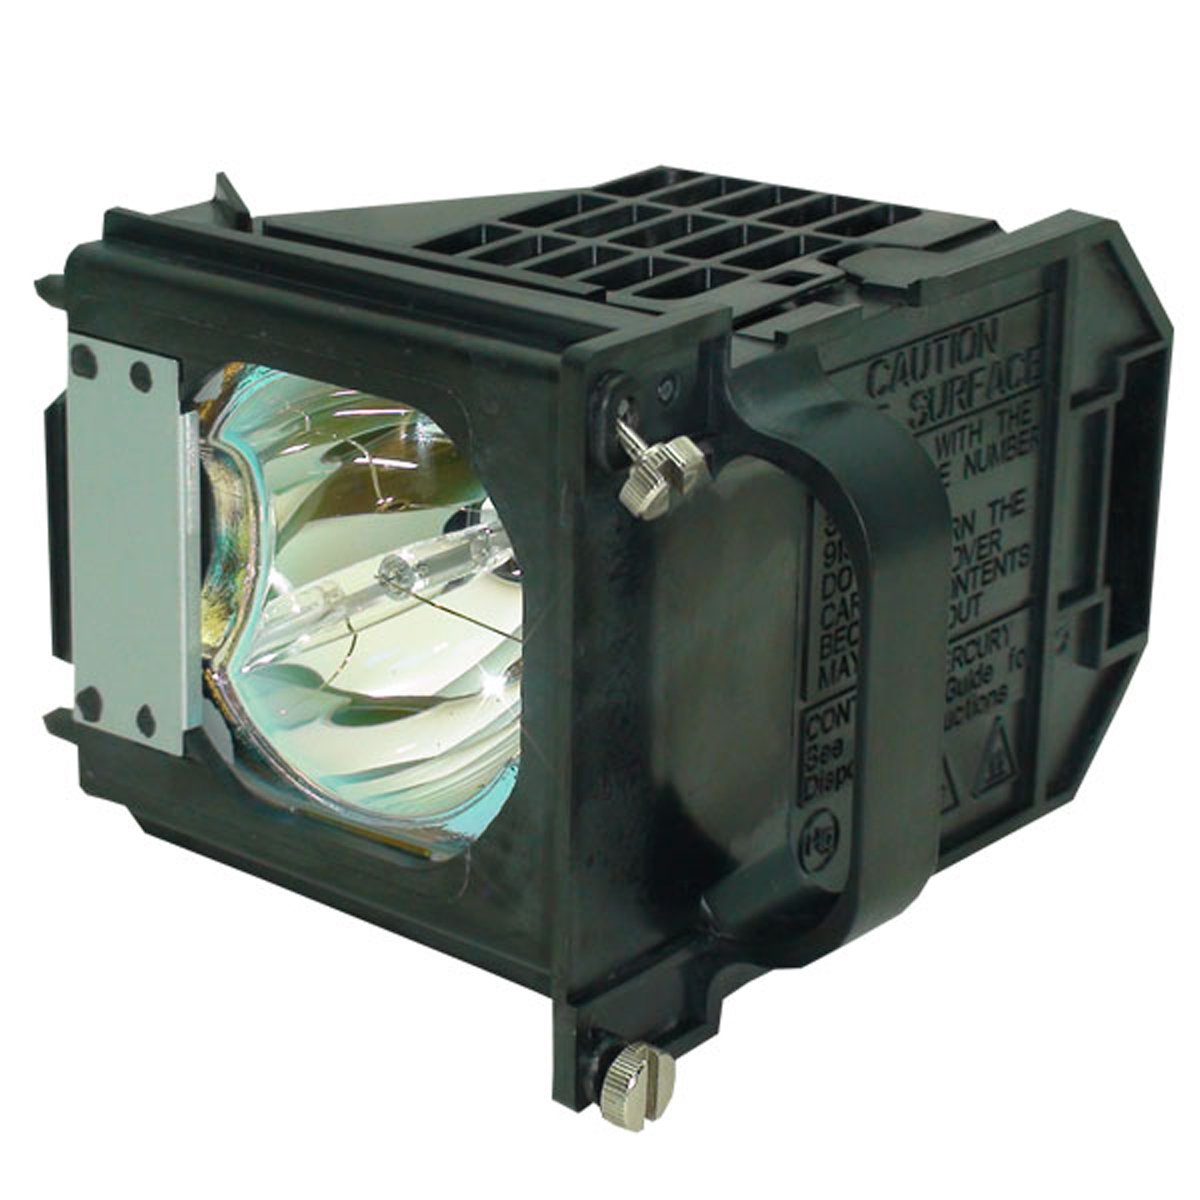 Mitsubishi WD-73734 TV Replacement Lamp with Housing by Aurabeam